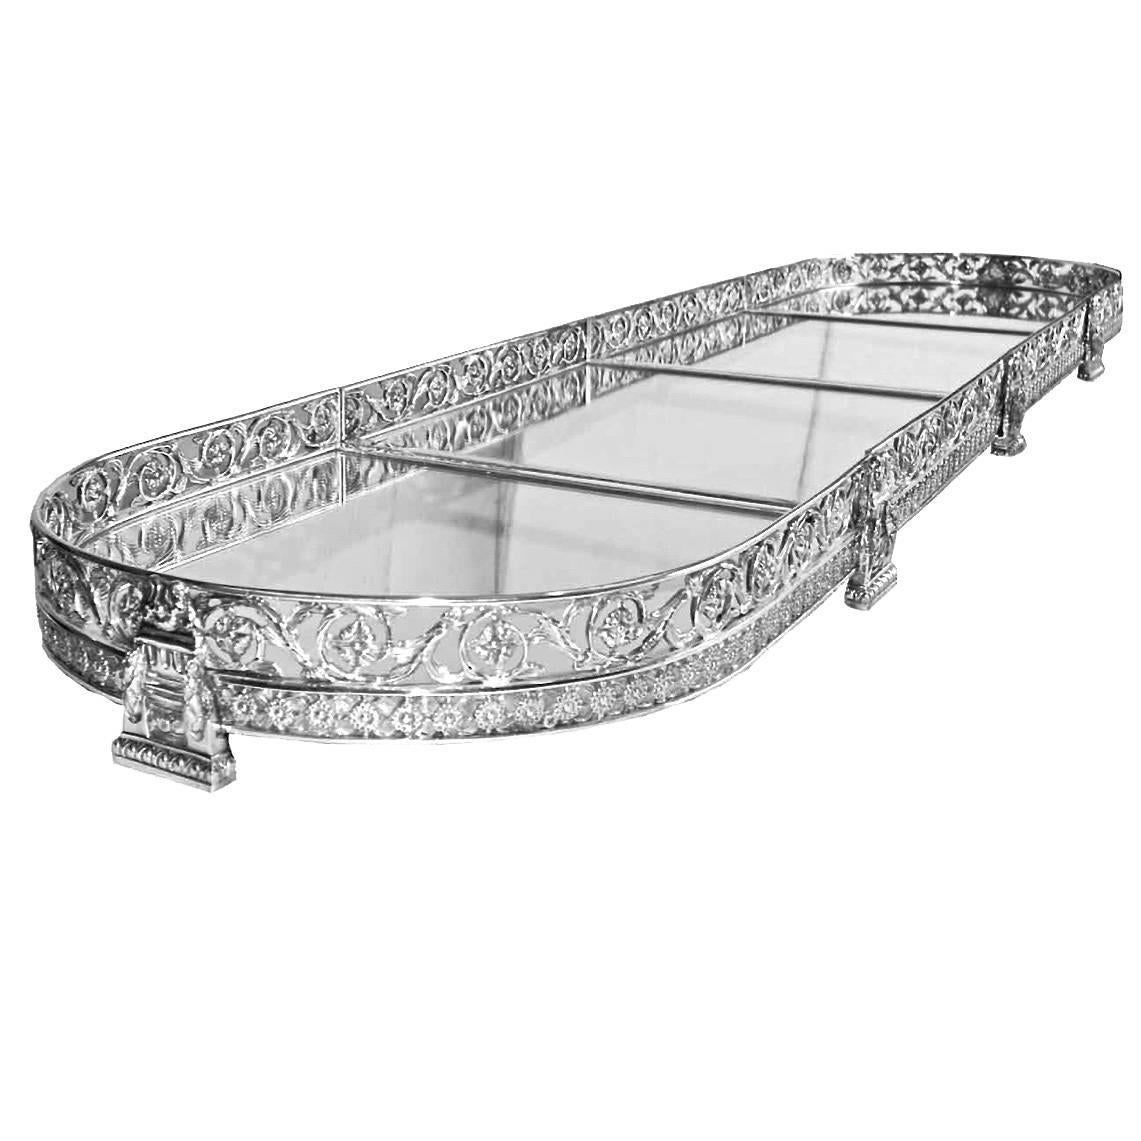 Four Sectional Mirrored Top Table Plateau For Sale At 1stdibs